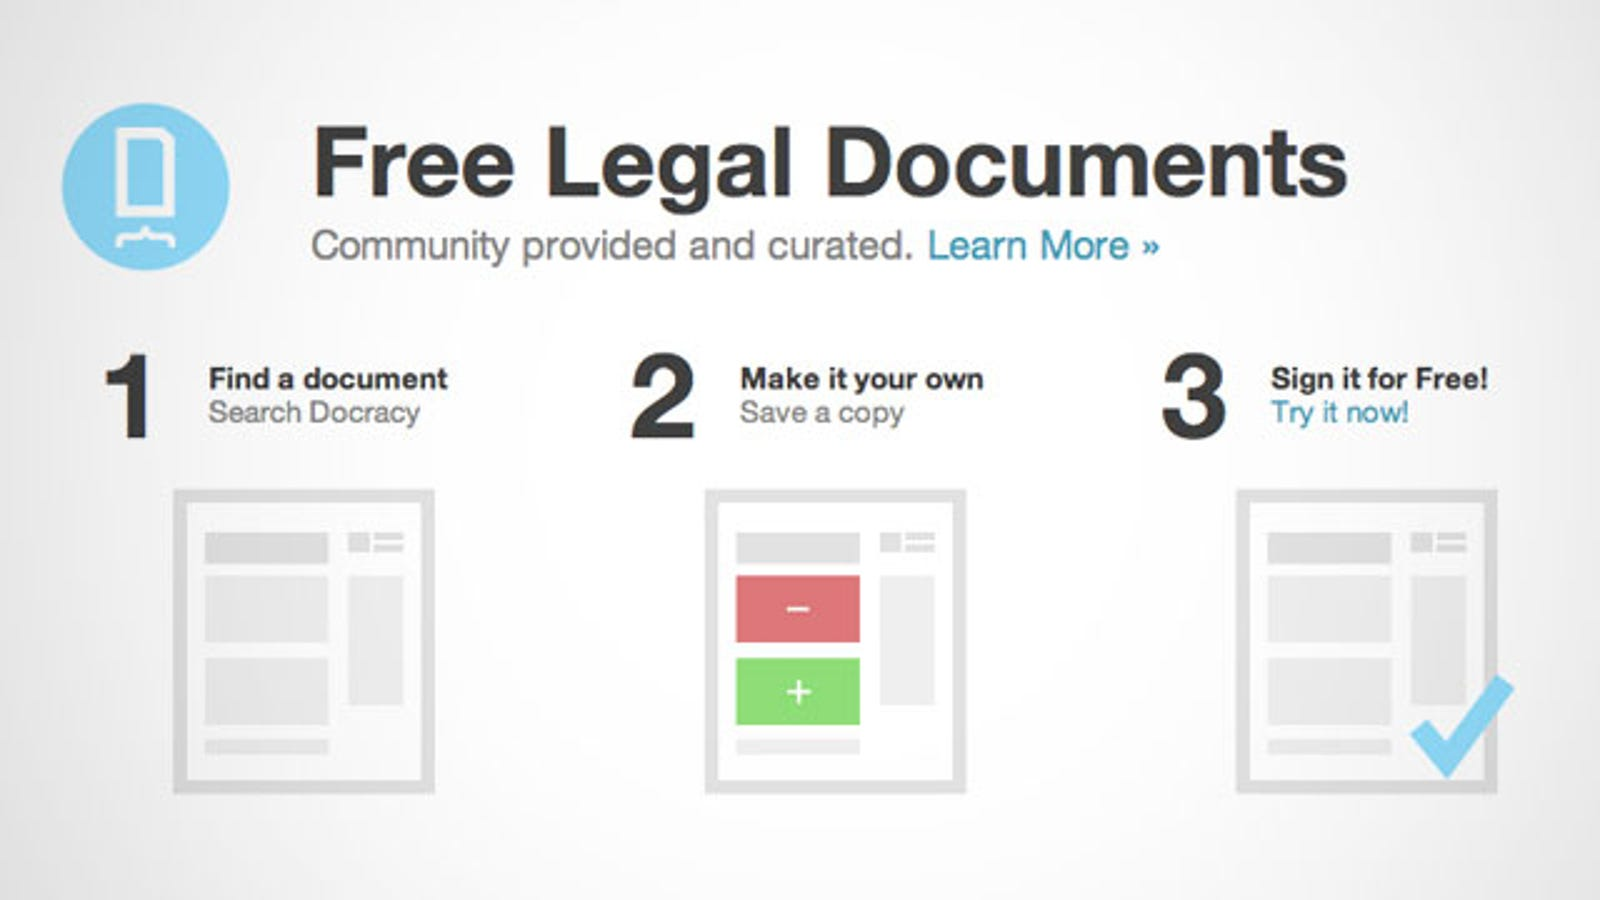 Docracy Provides Free Legal Documents For Many Common Situations - Find legal documents